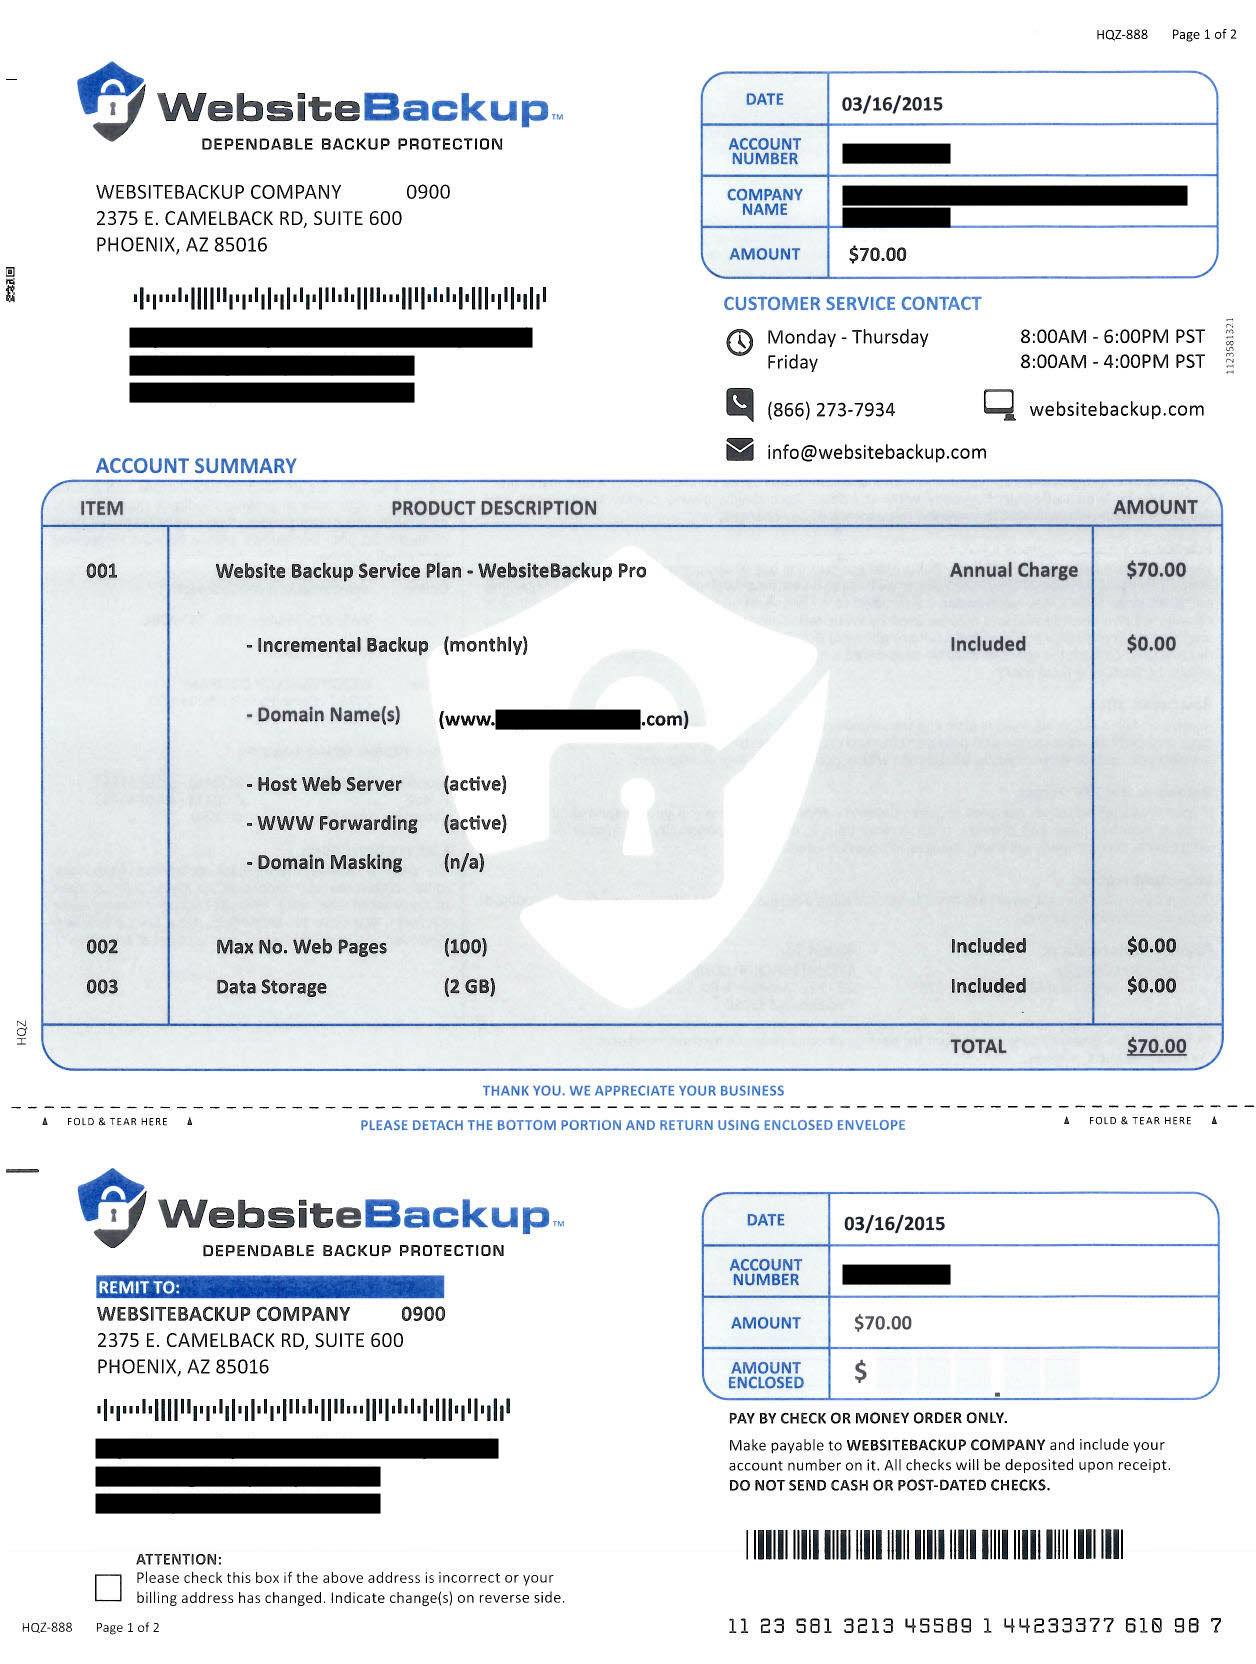 website backup invoice scam